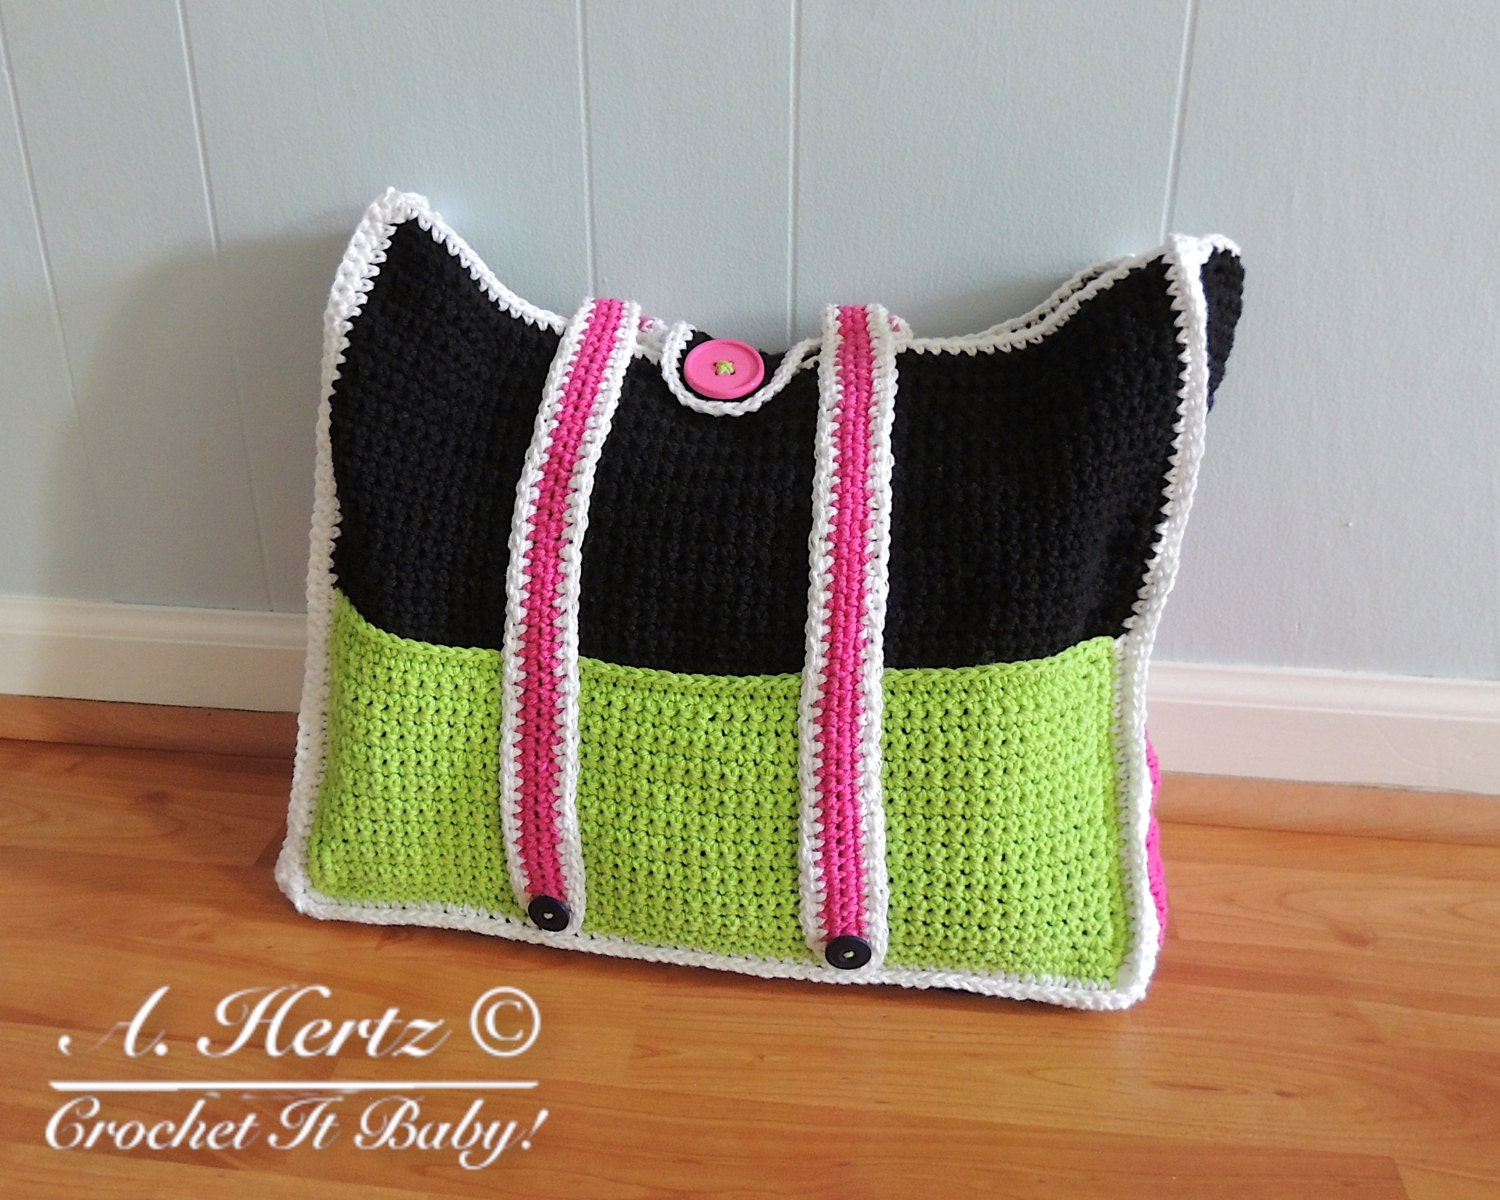 Crochet Summer Tote Bag with pockets PATTERN ONLY